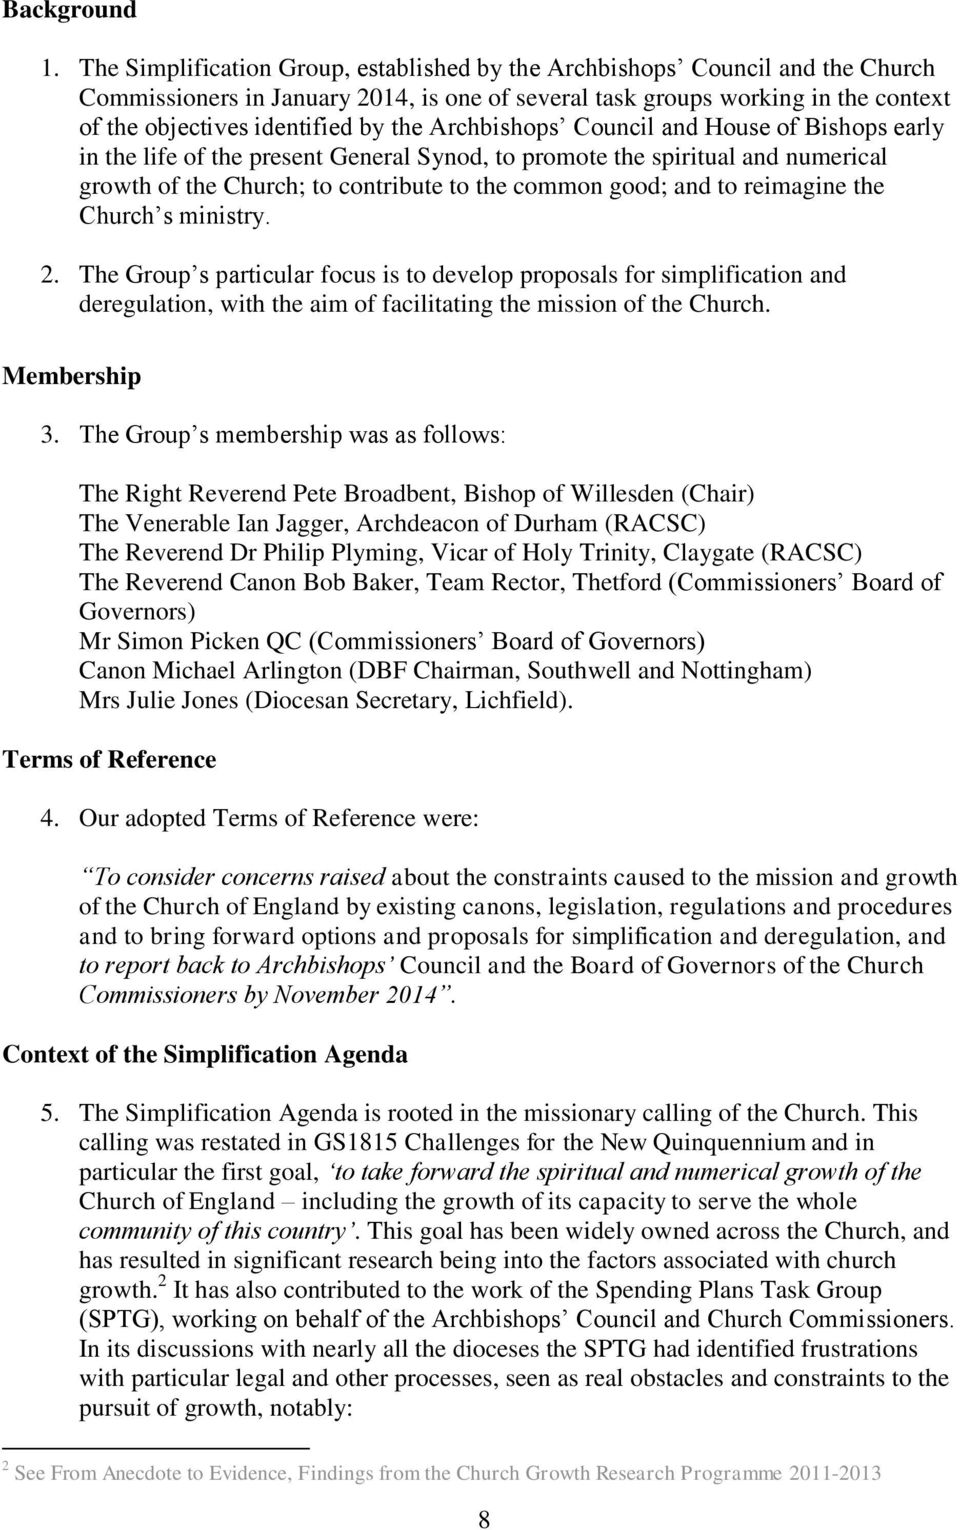 Archbishops Council and House of Bishops early in the life of the present General Synod, to promote the spiritual and numerical growth of the Church; to contribute to the common good; and to